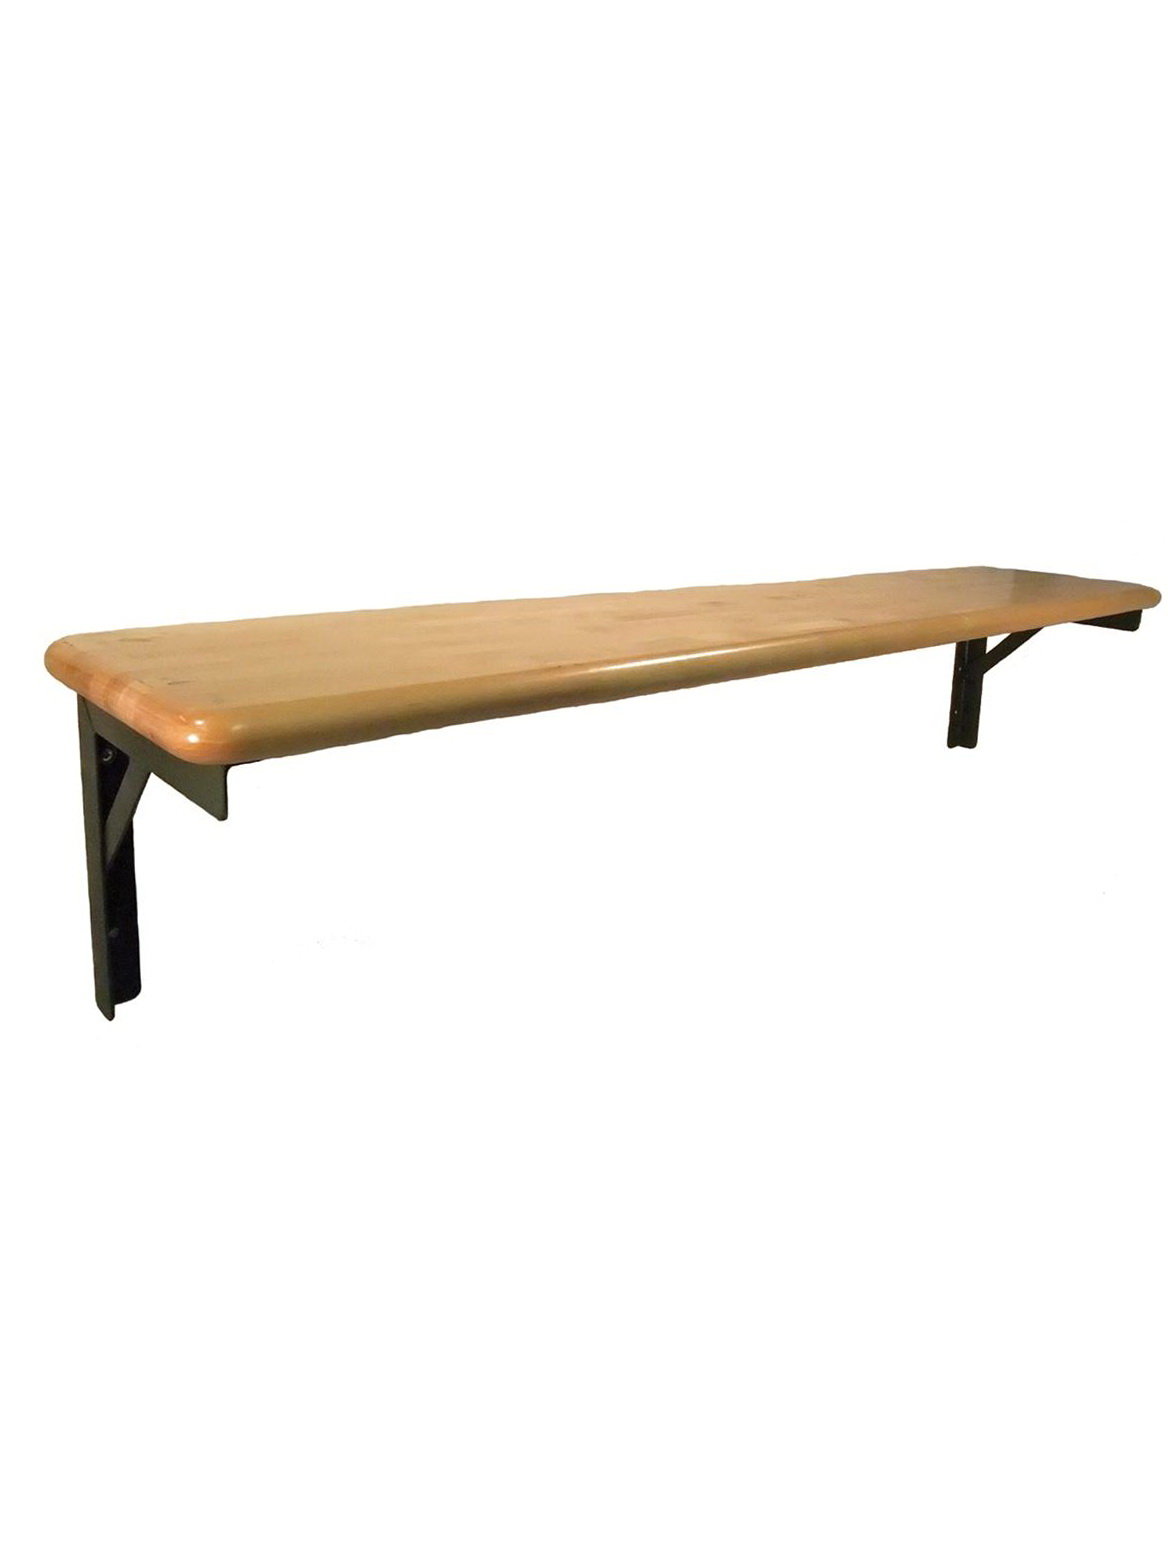 Locker Room Benches Wall Mount